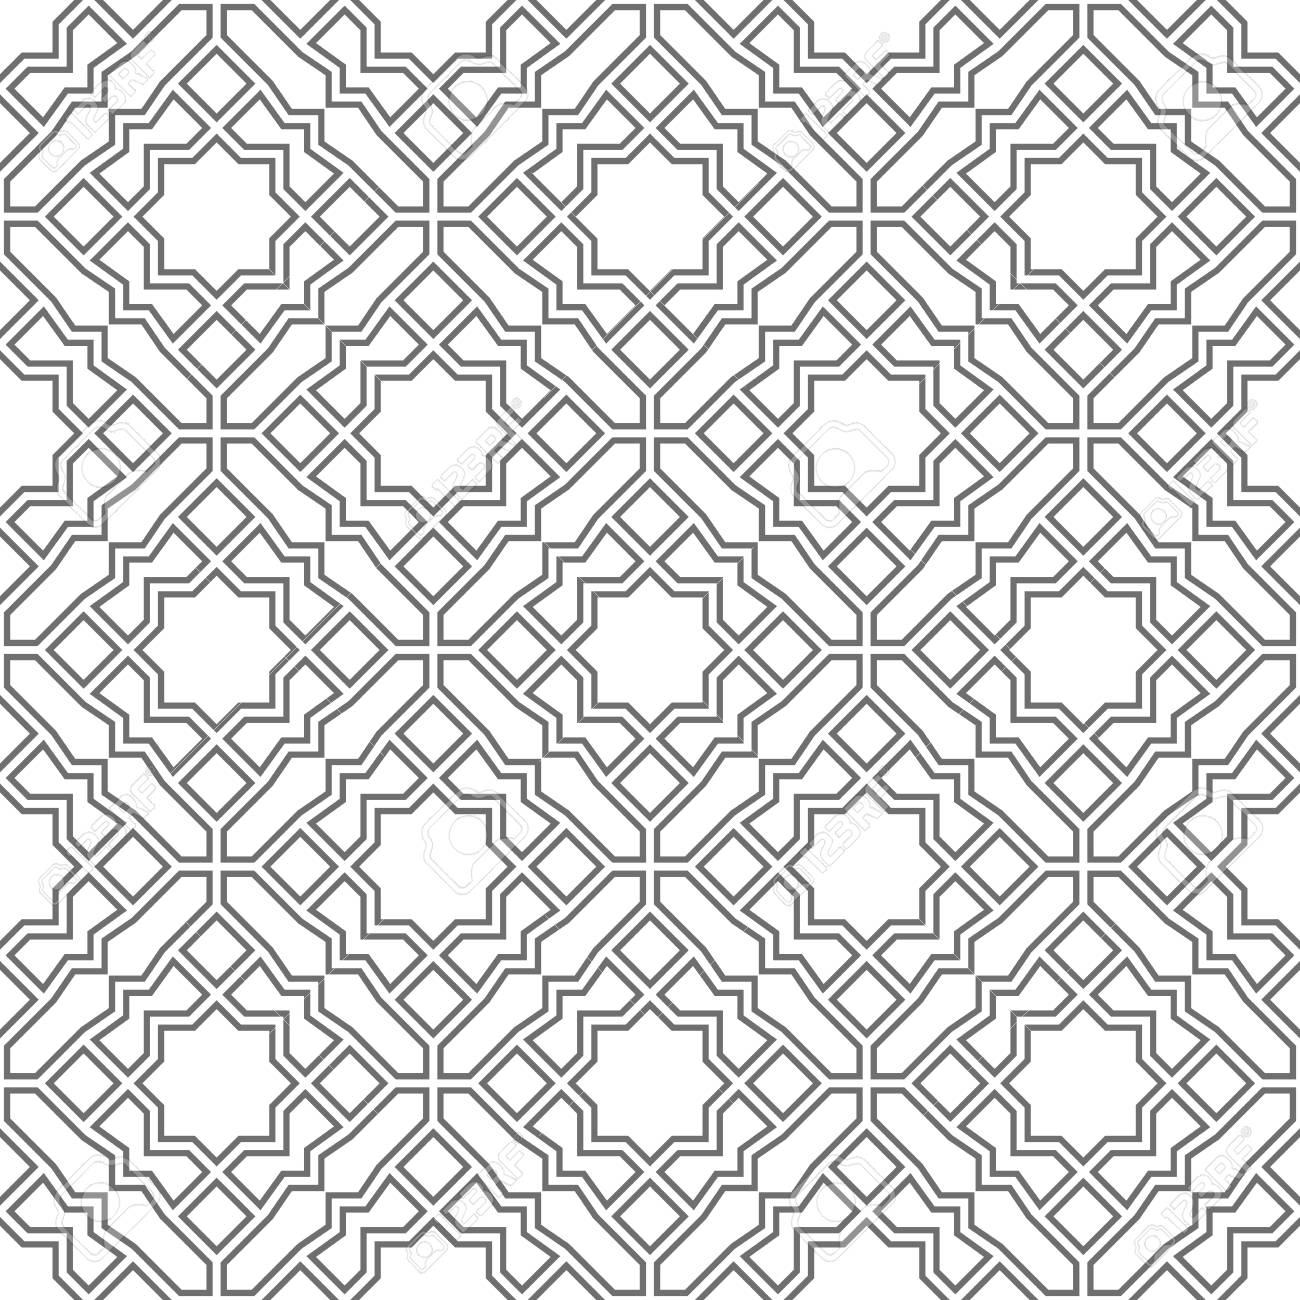 abstract geometry pattern in arabian style seamless vector background royalty free cliparts vectors and stock illustration image 97718289 abstract geometry pattern in arabian style seamless vector background